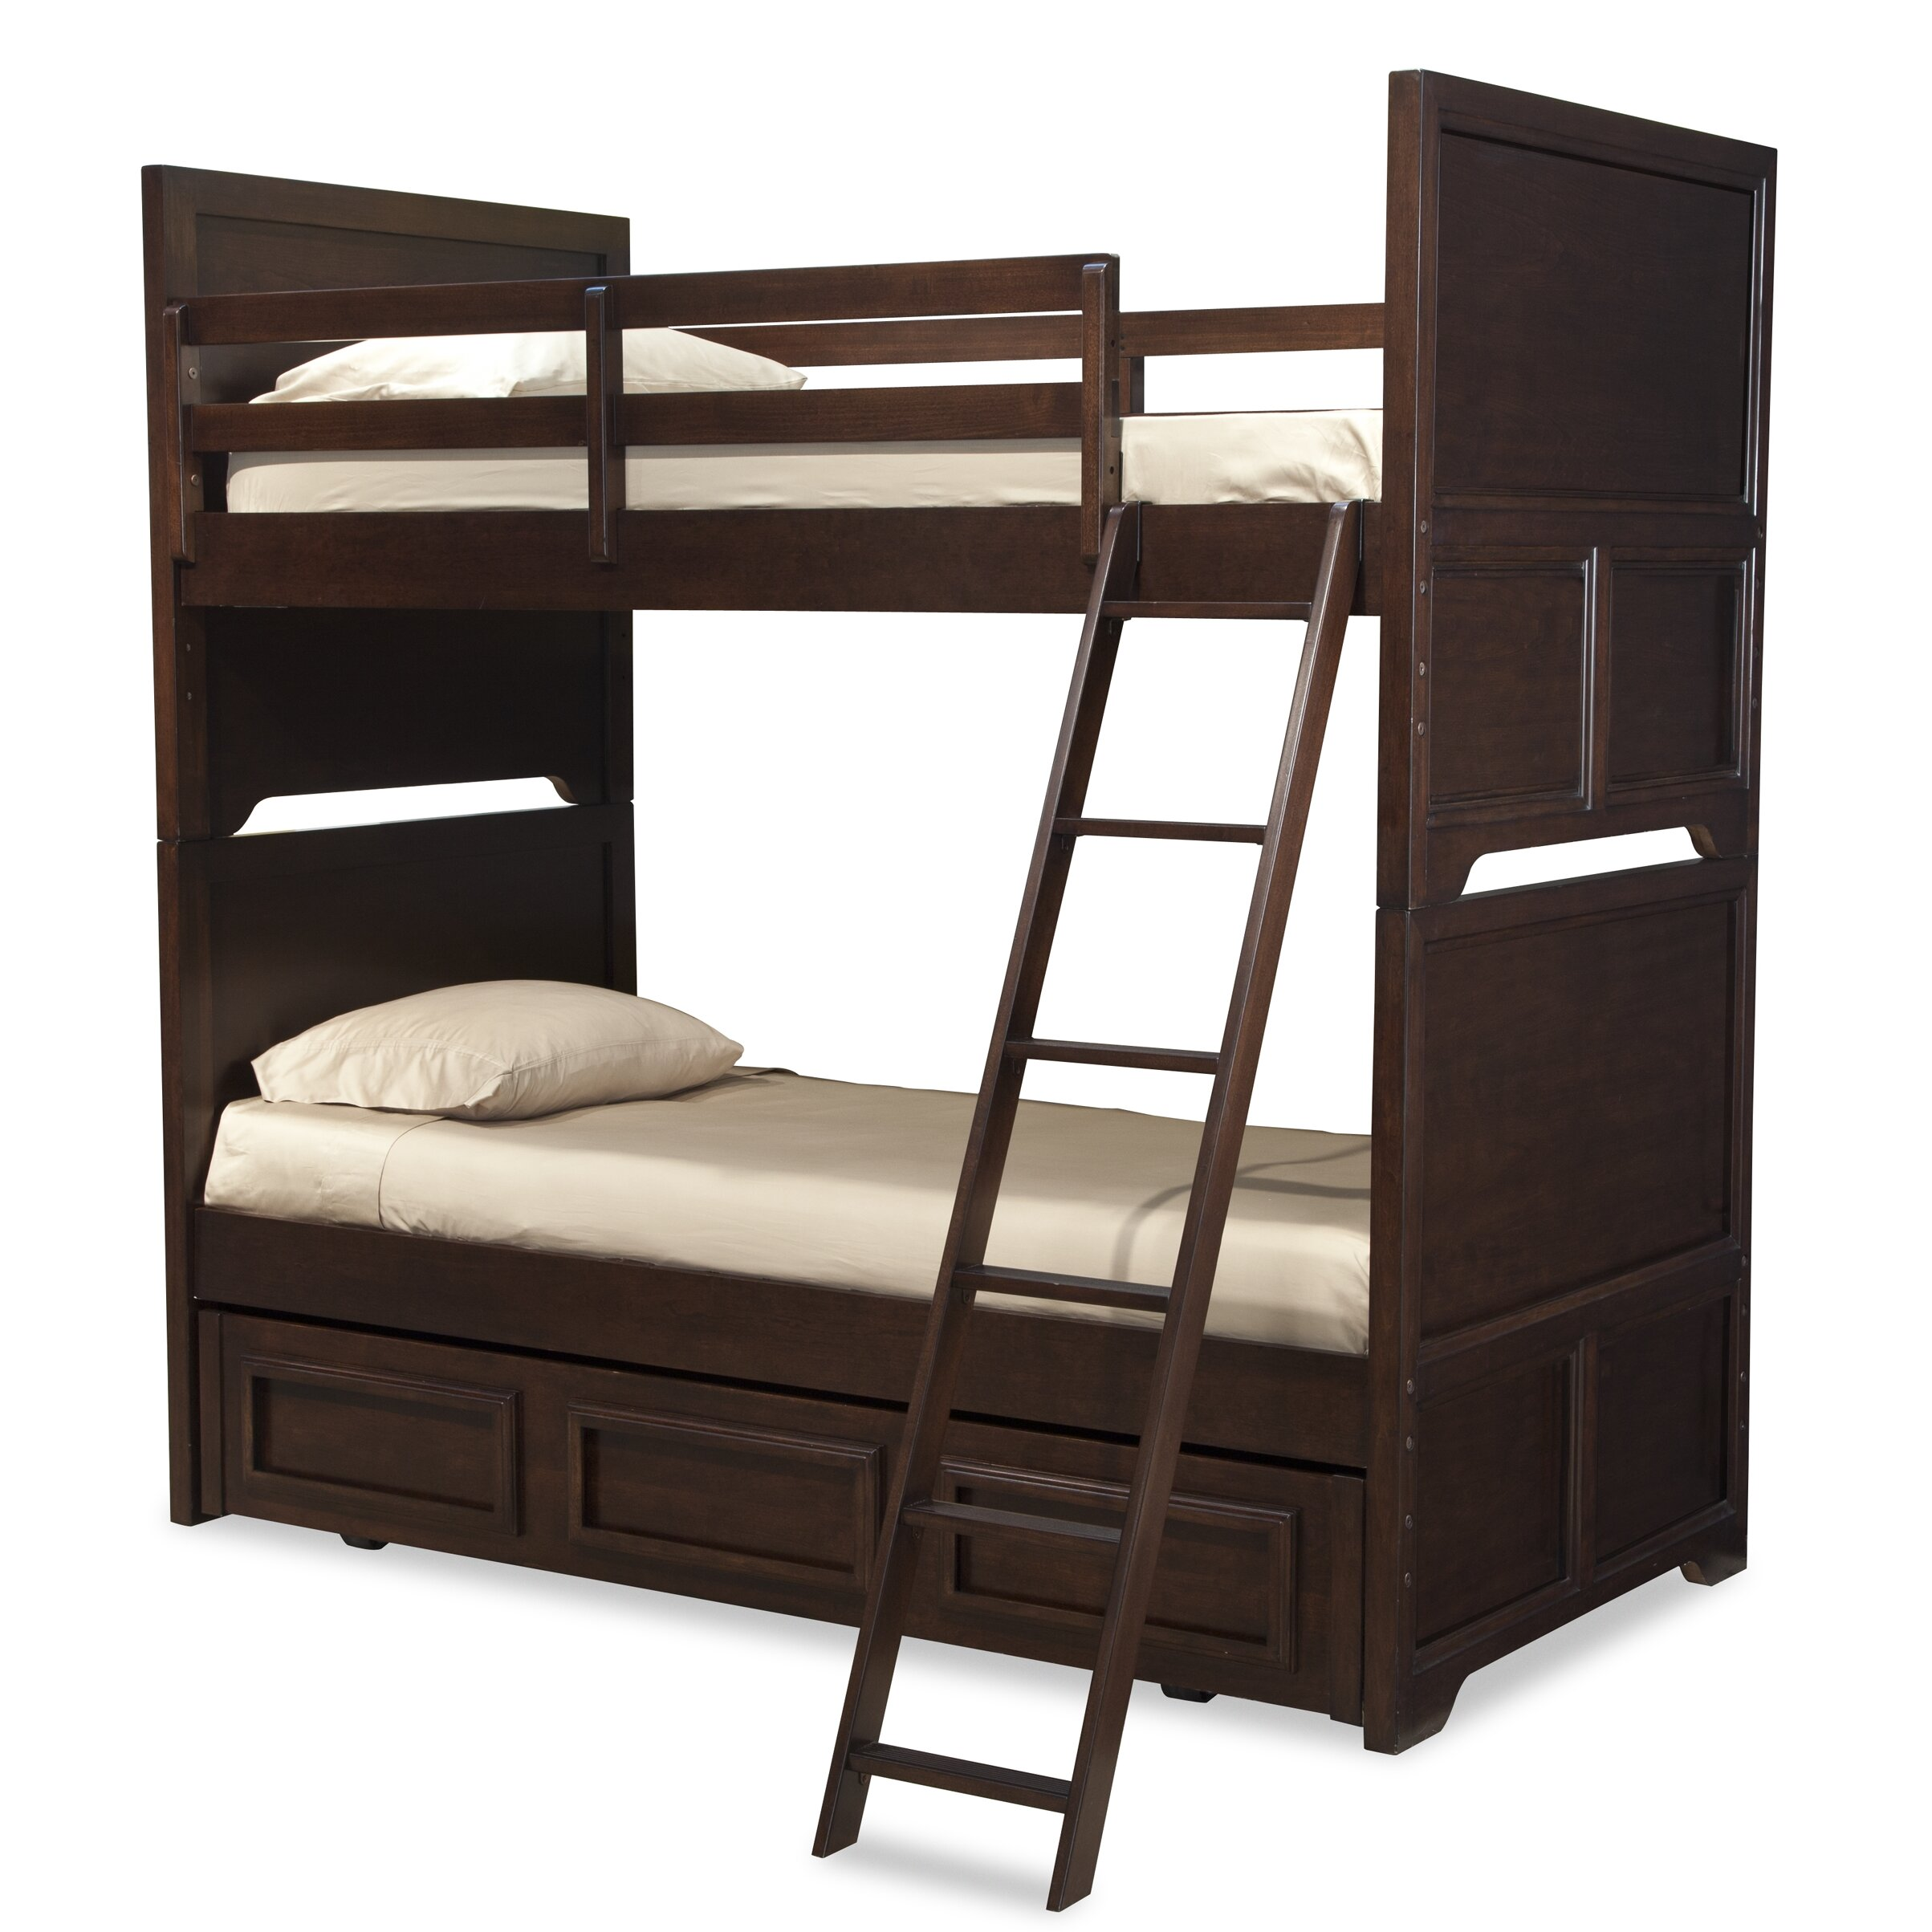 Lc Kids Benchmark Twin Over Twin Standard Bunk Bed With Underbed Storage Drawer Wayfair